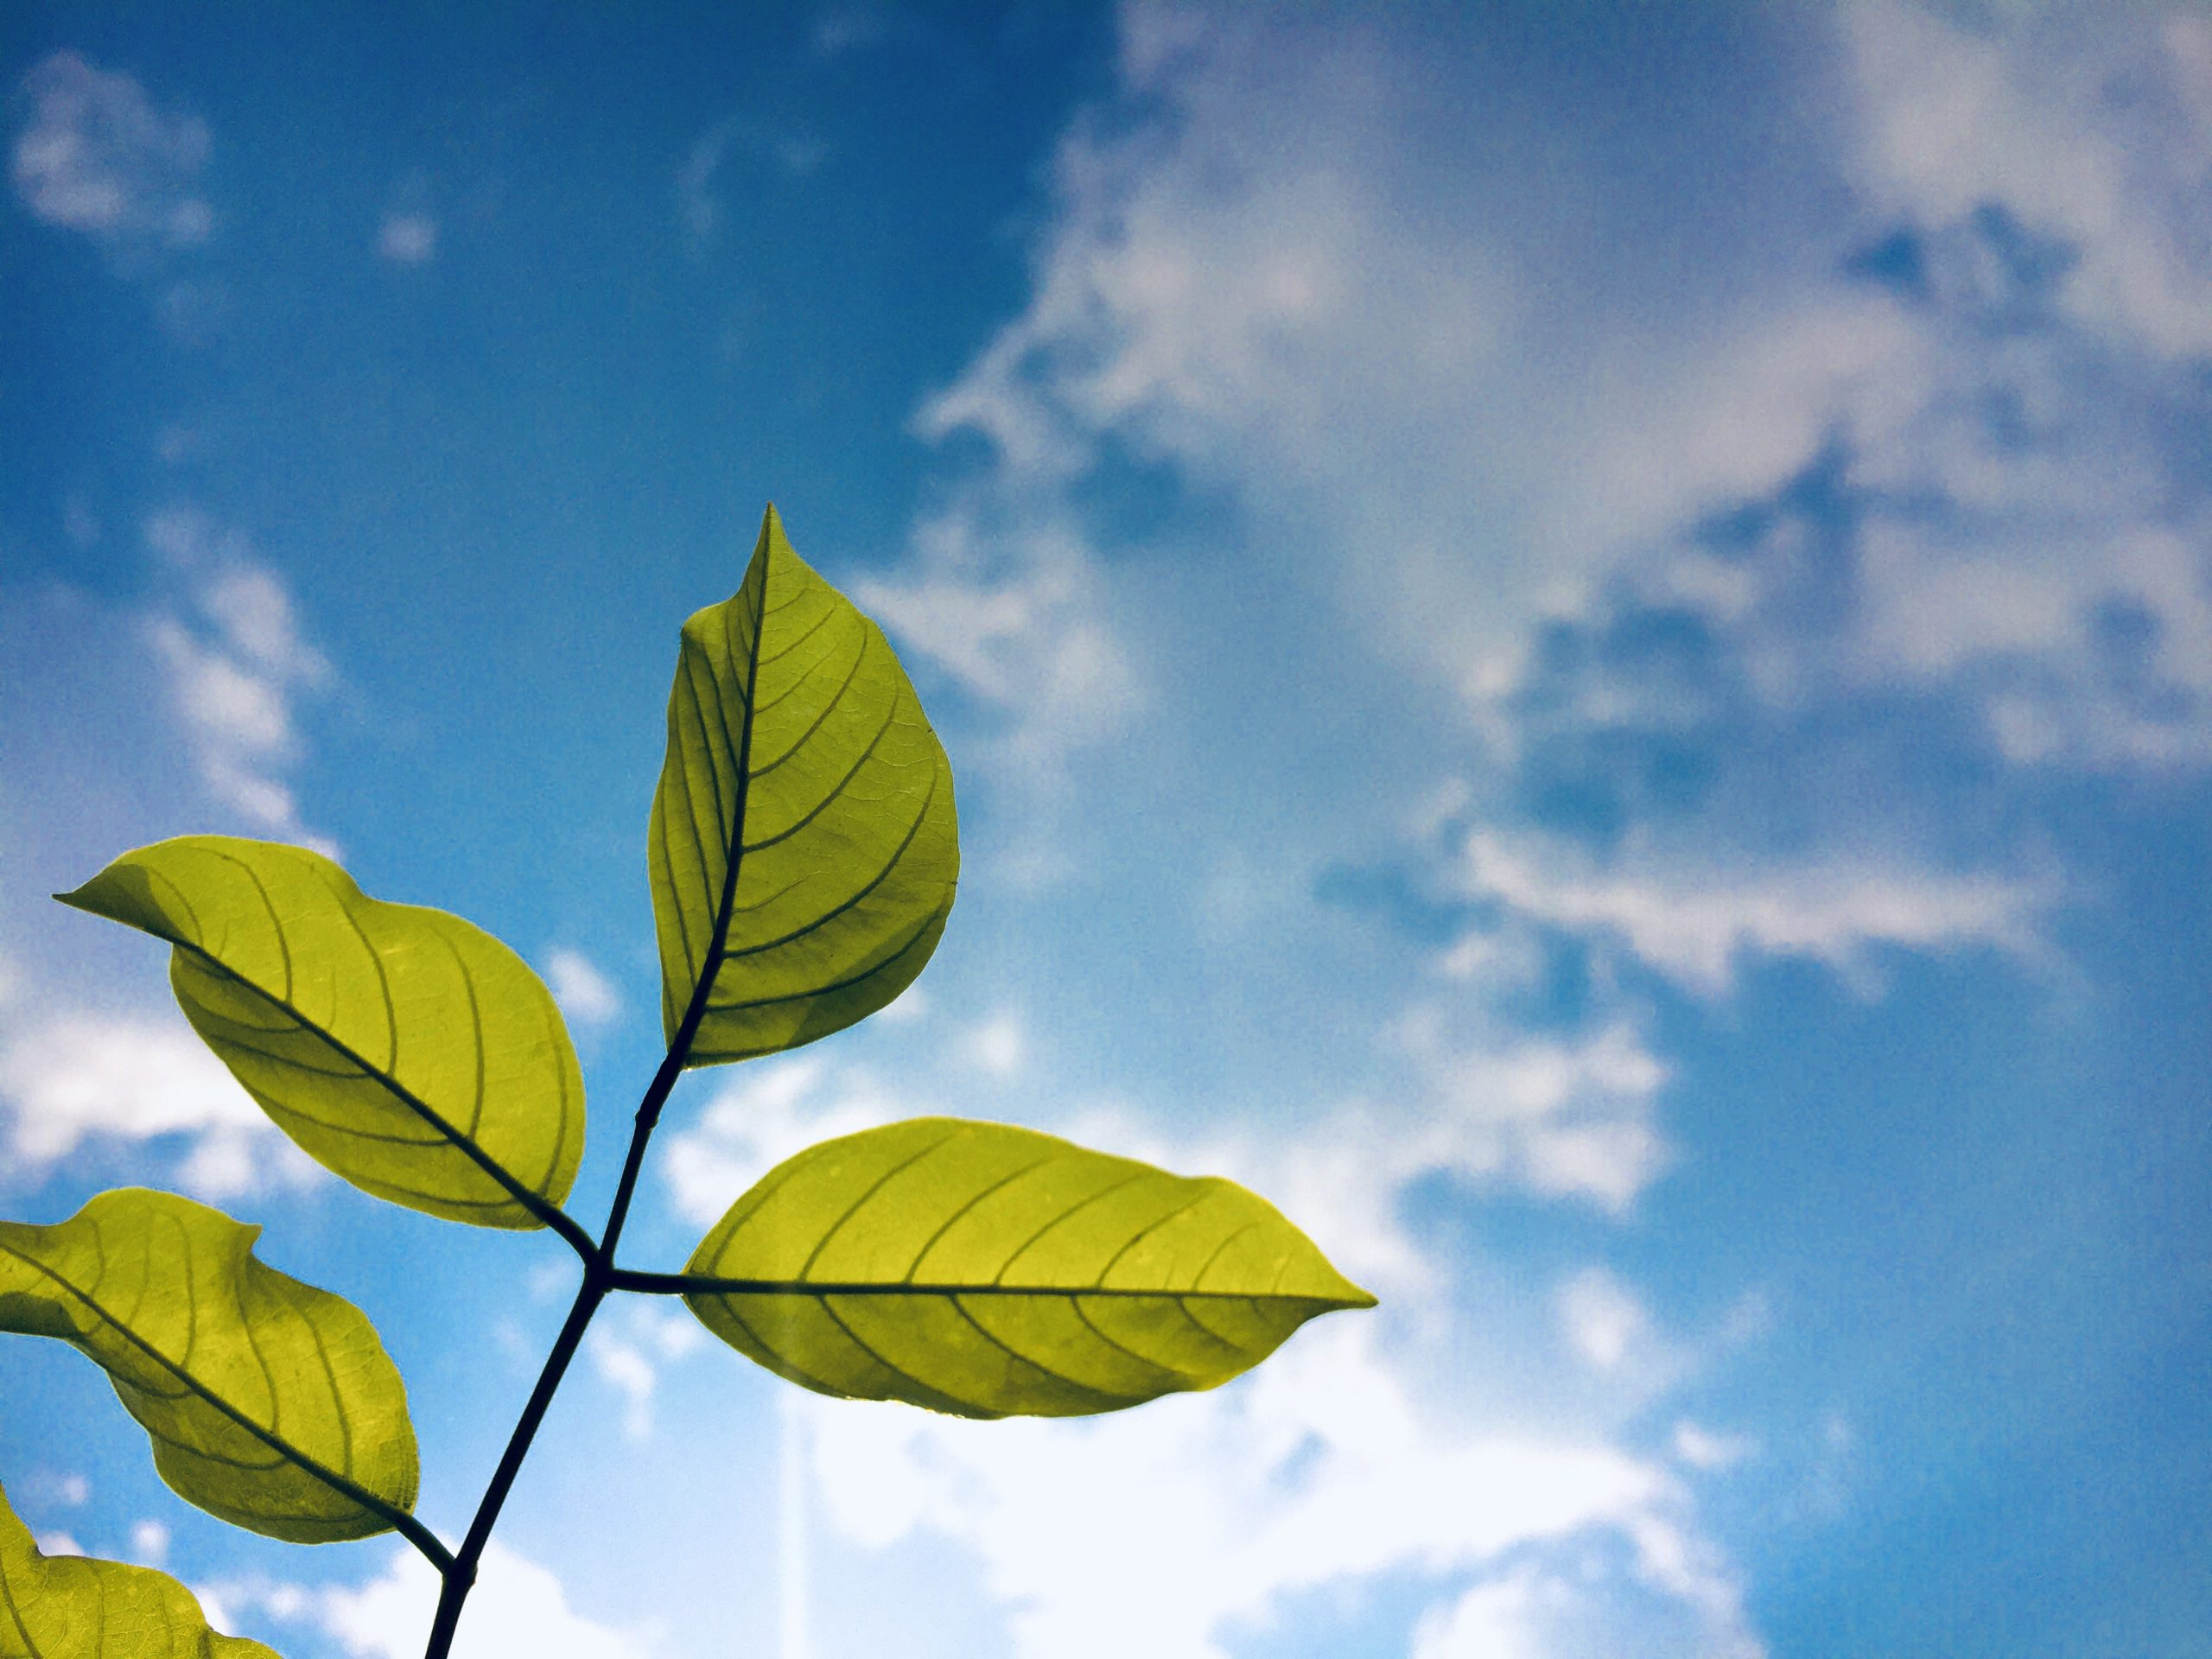 Clouds and a plant leaves